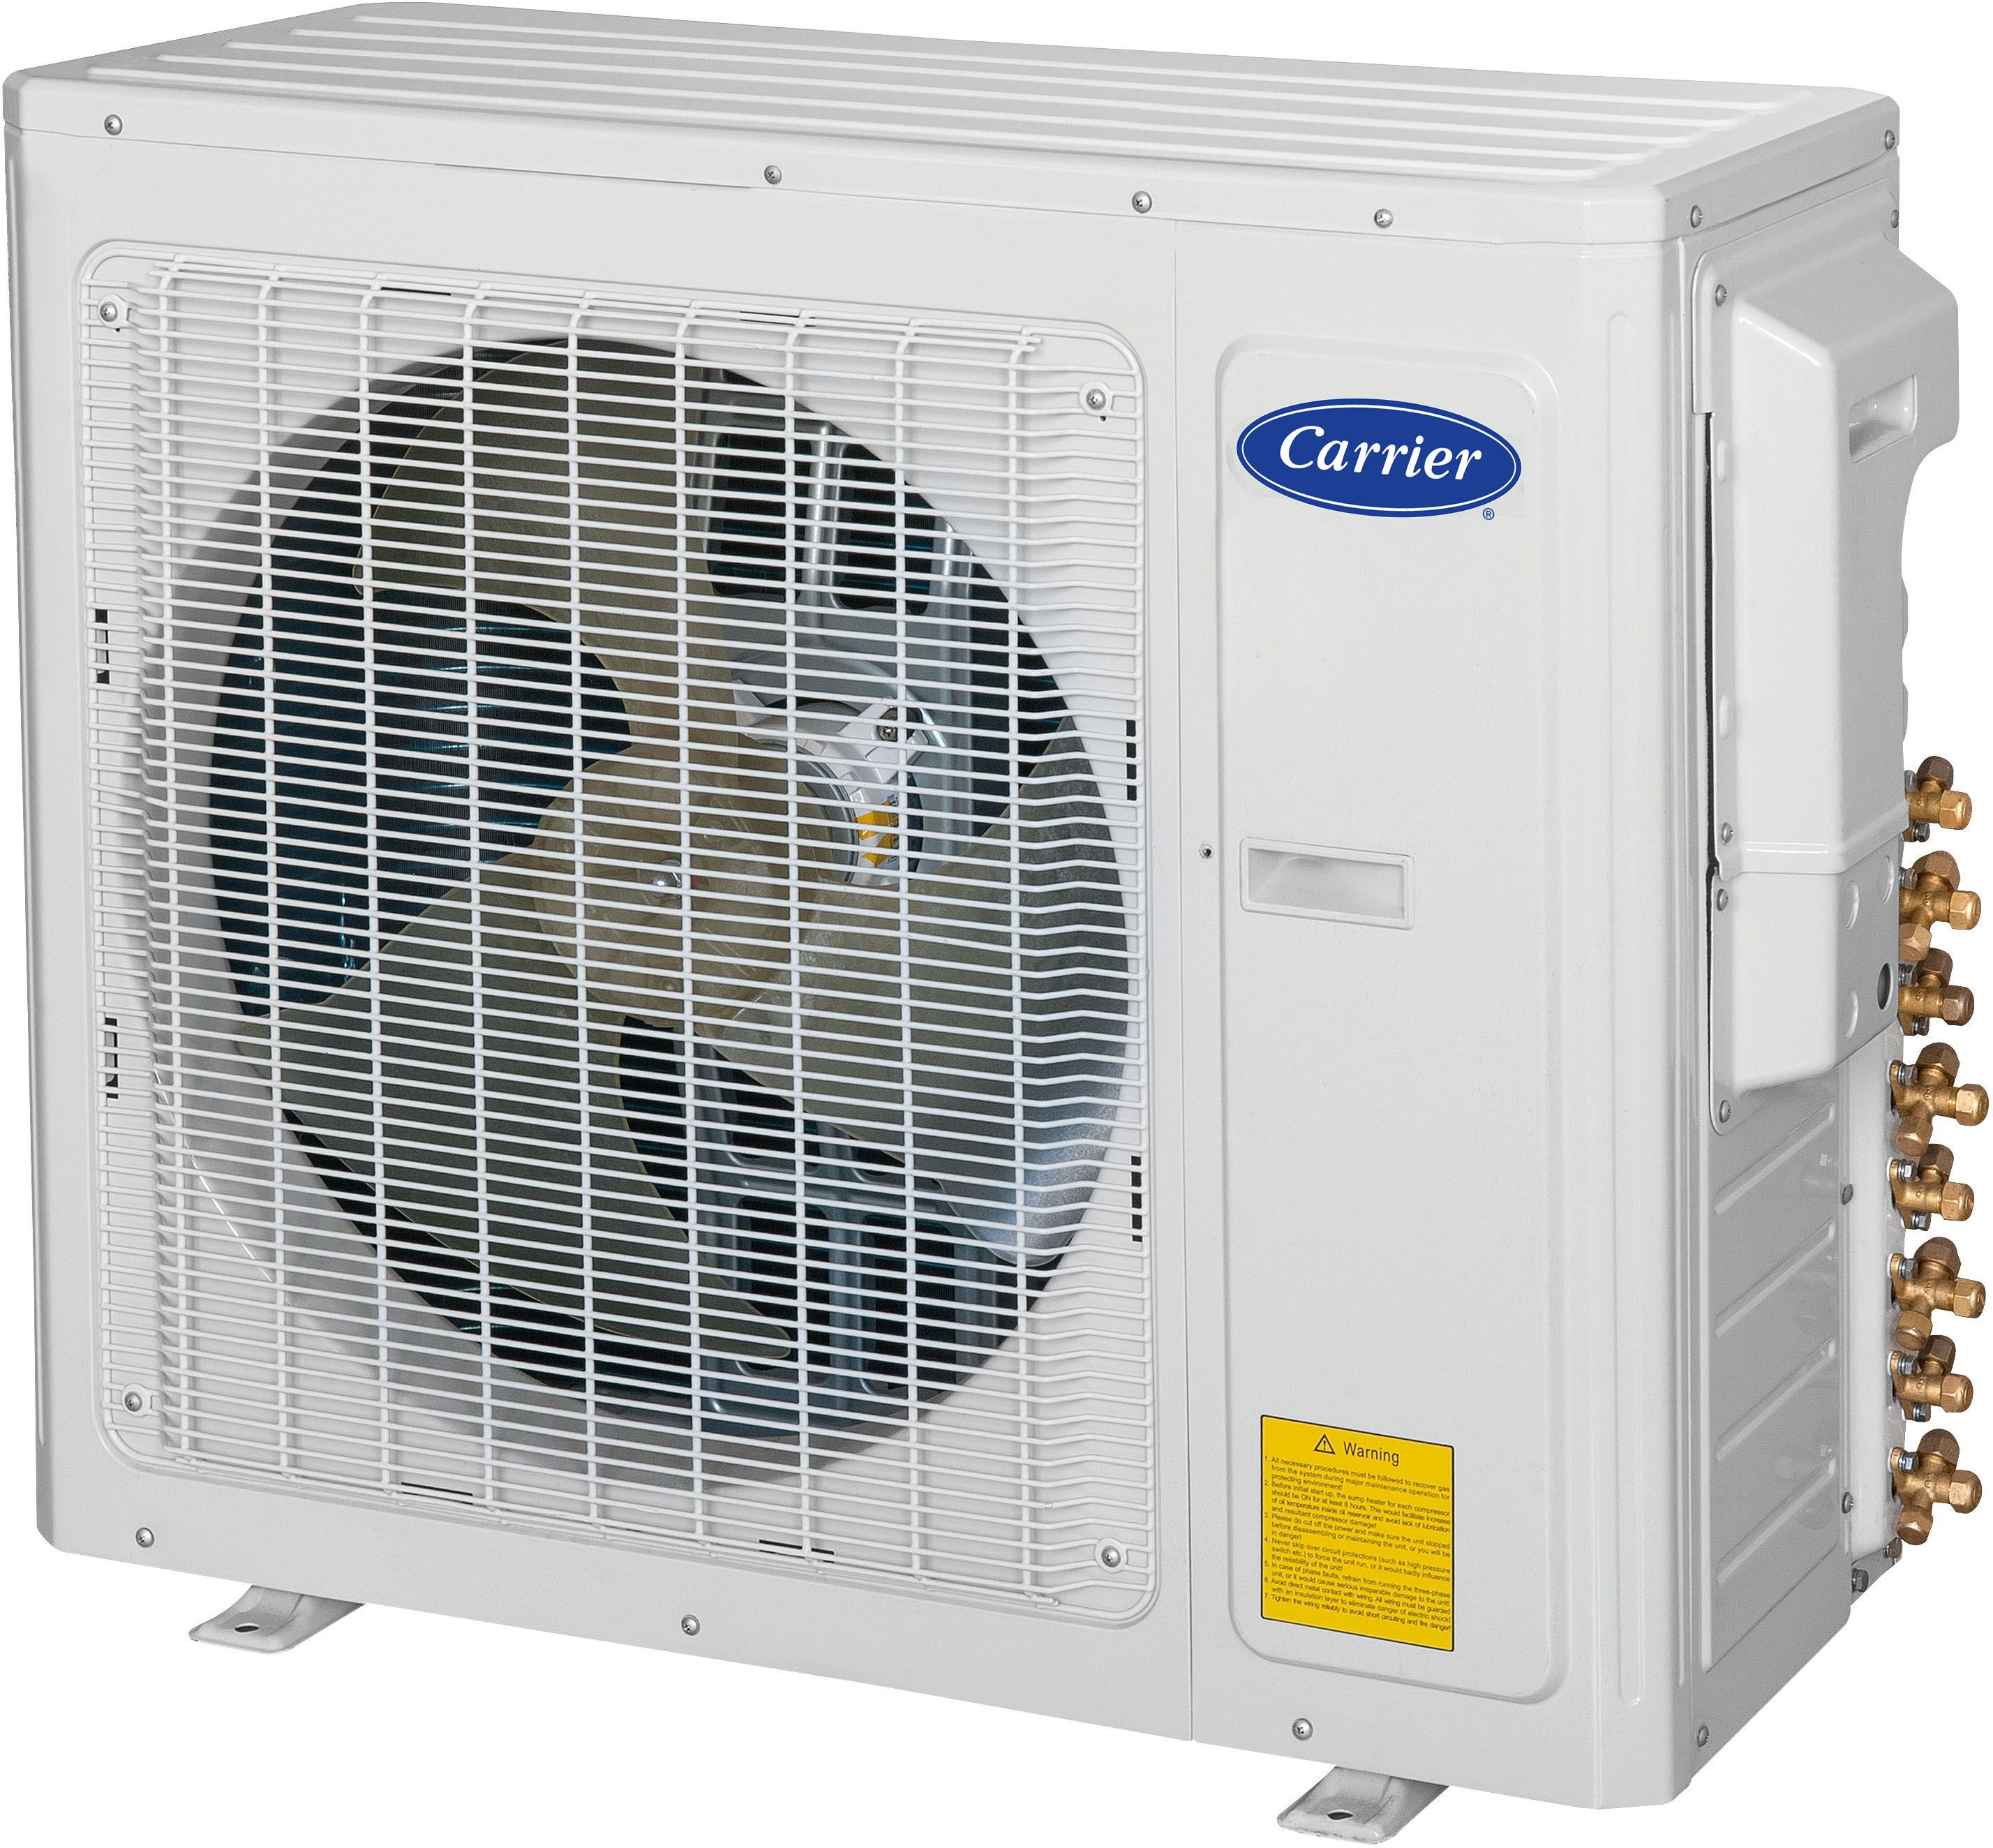 Carrier Ductless Split Outdoor Unit For Heating Cooling Your